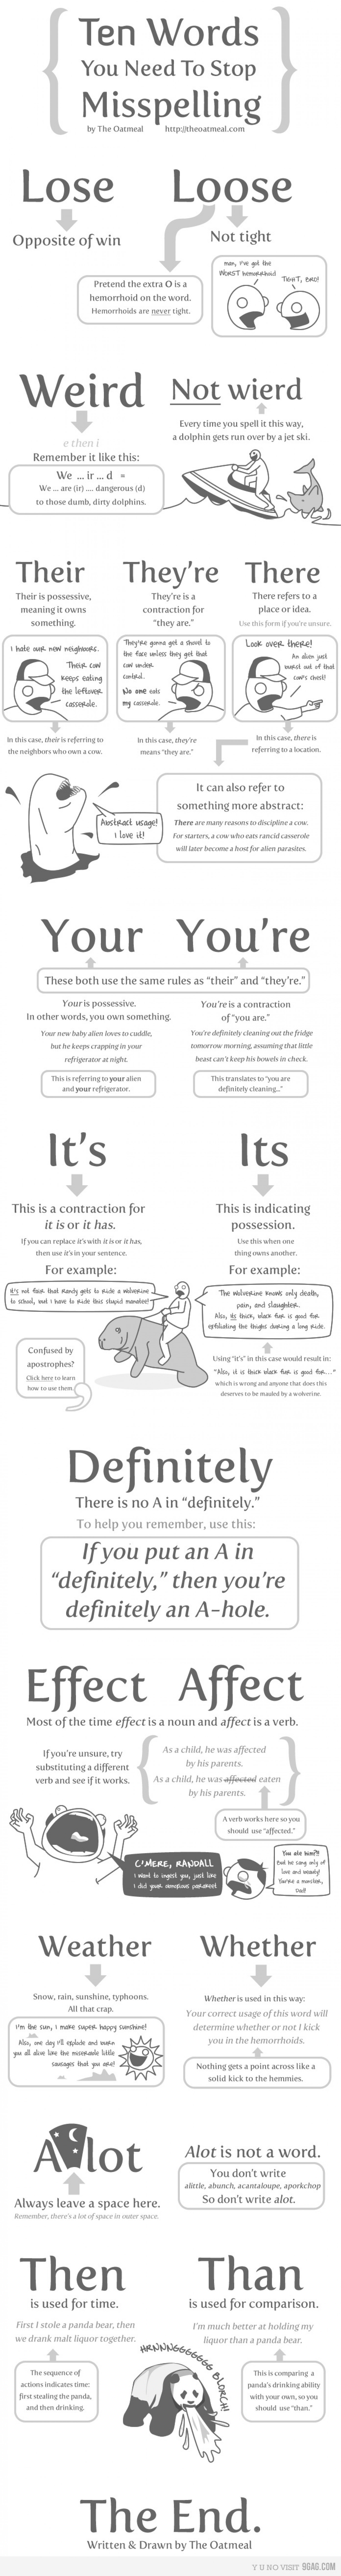 10 Words You Need To Stop Misspelling Infographic